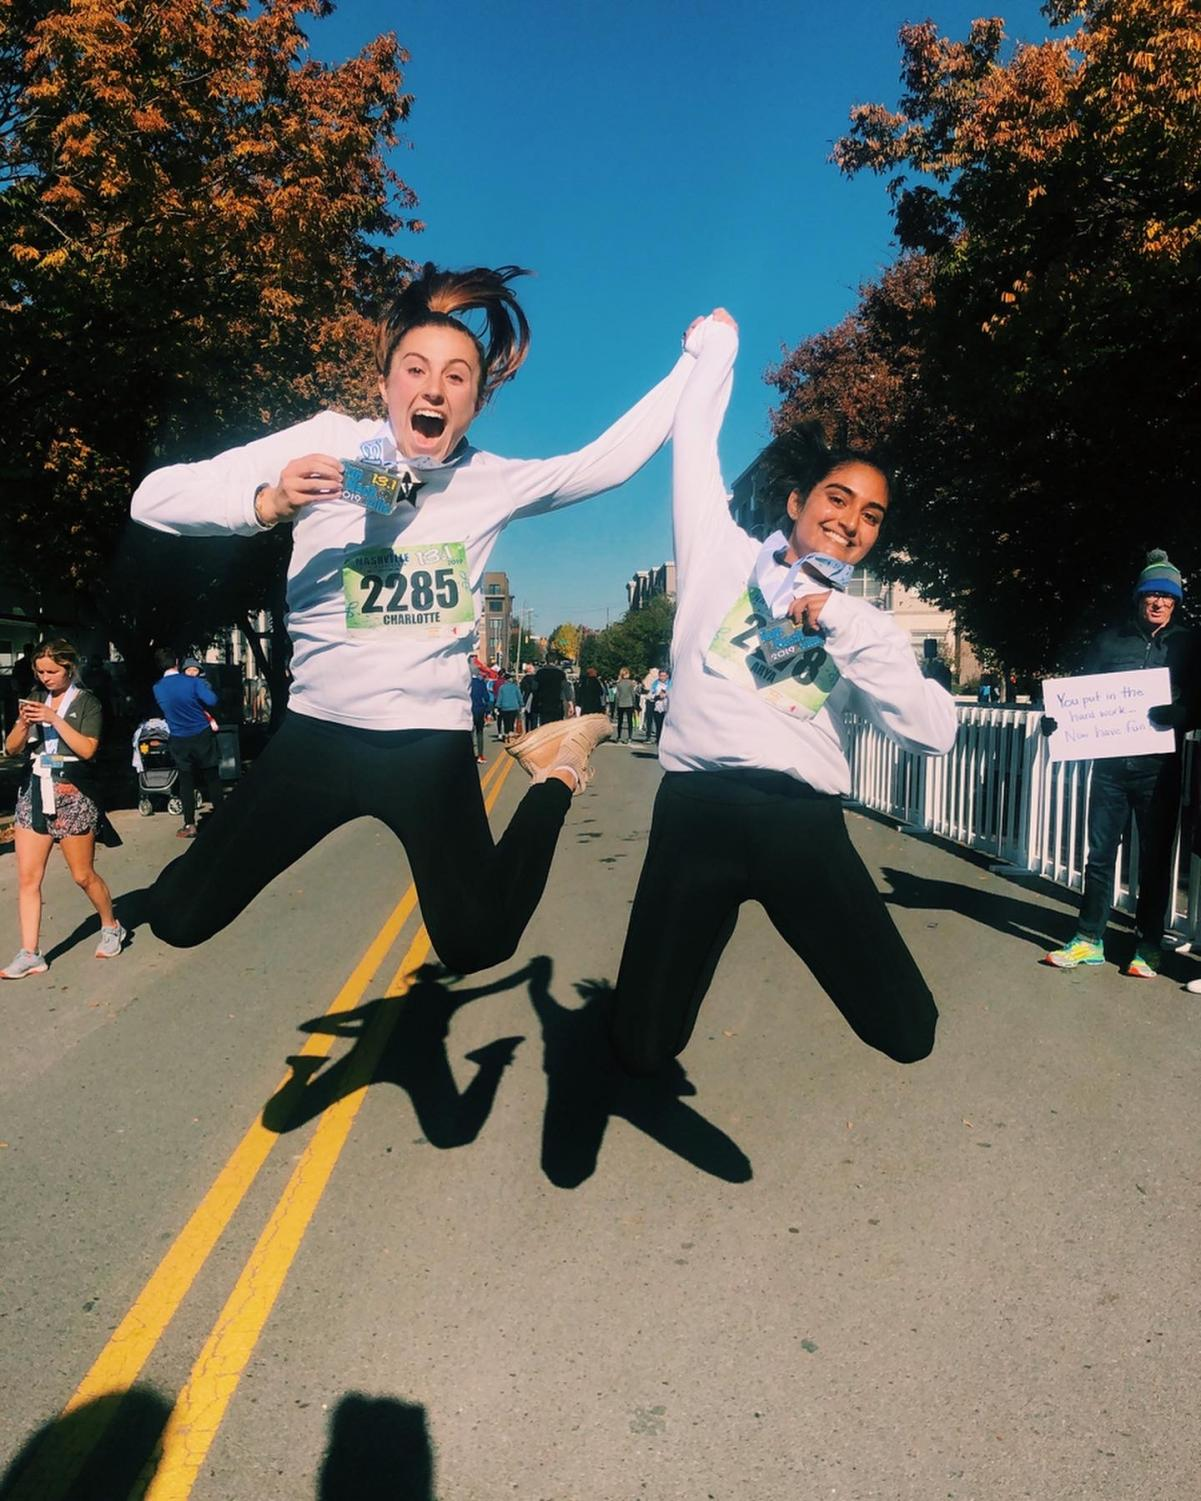 First-years Arya Chawla and Charlotte Edmunds celebrate the completion of the yearly Nashville Half Marathon. (Photo by Maggie Victory)